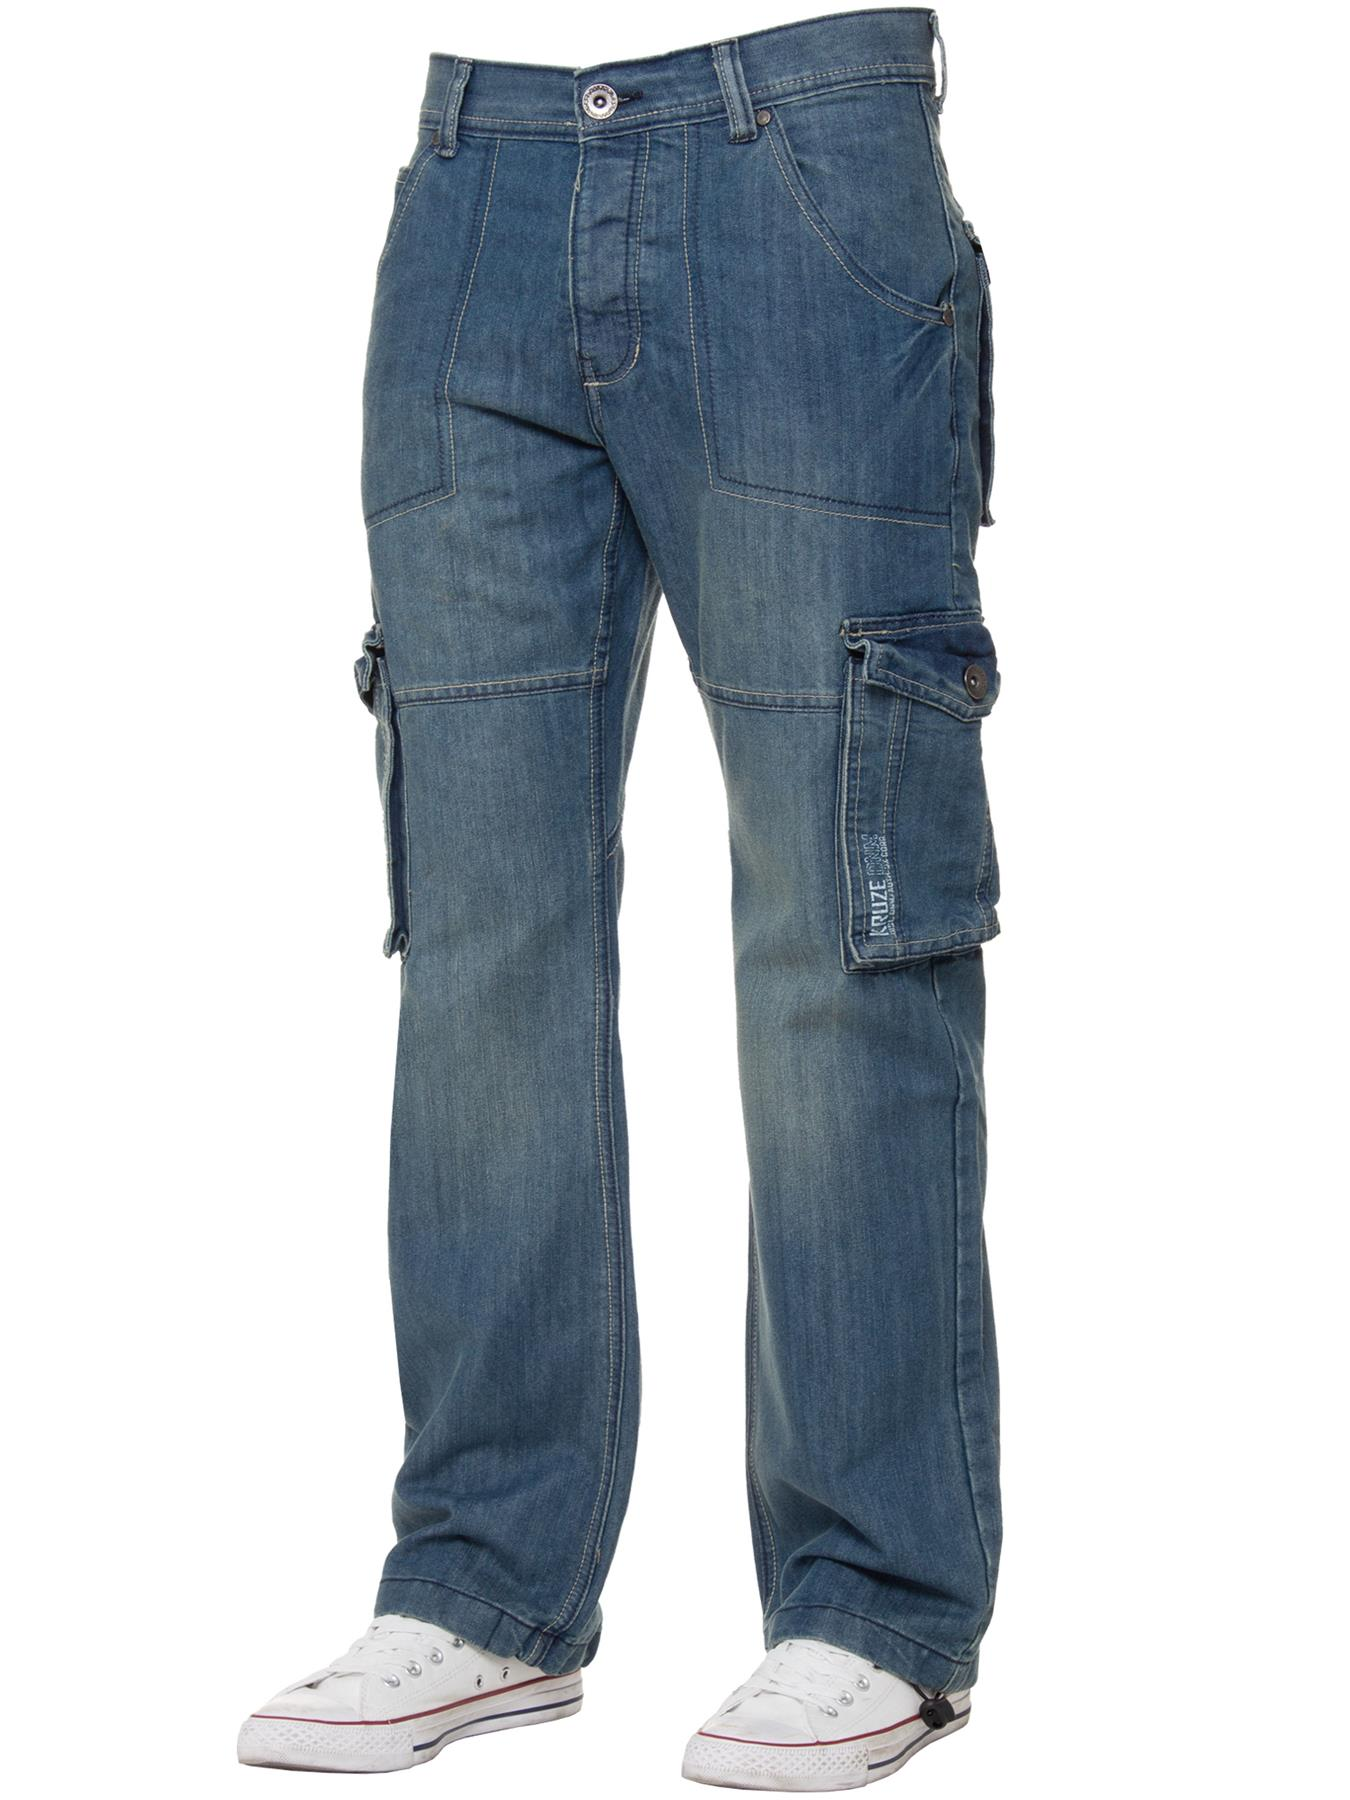 Kruze-Mens-Cargo-Combat-Jeans-Casual-Work-Denim-Pants-Big-Tall-All-Waist-Sizes thumbnail 10